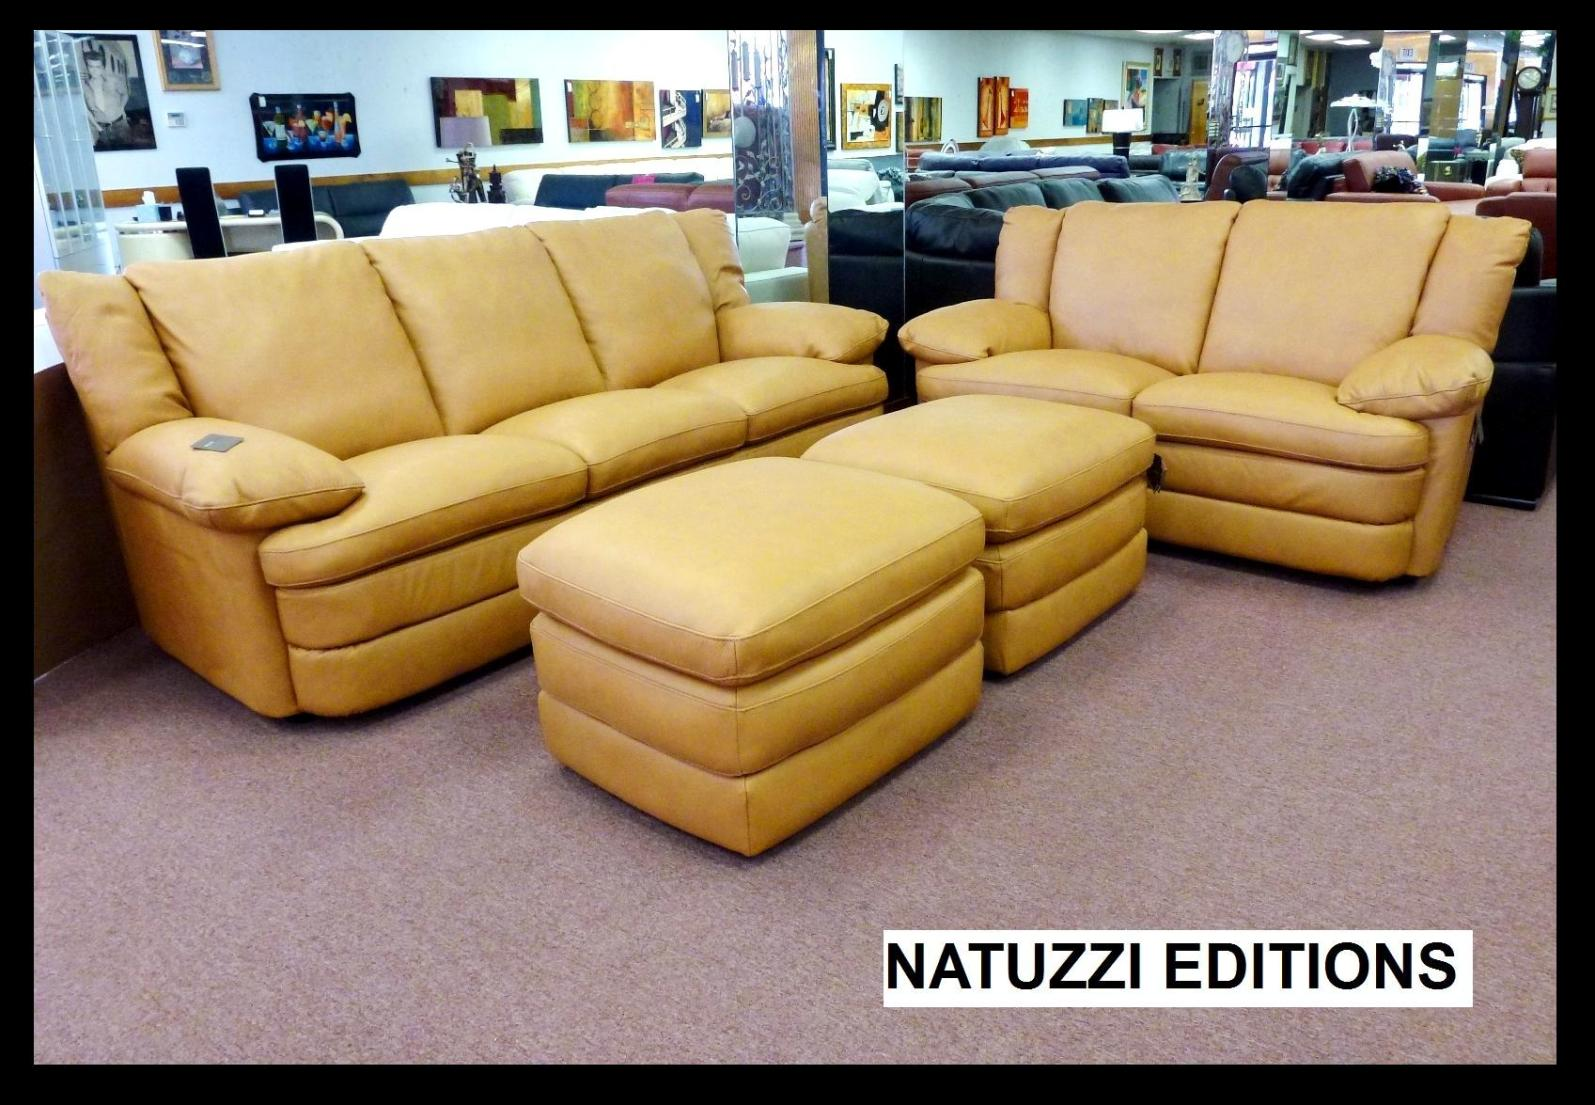 sofa mart labor day sale melody bronze natuzzi leather sofas and sectionals by interior concepts